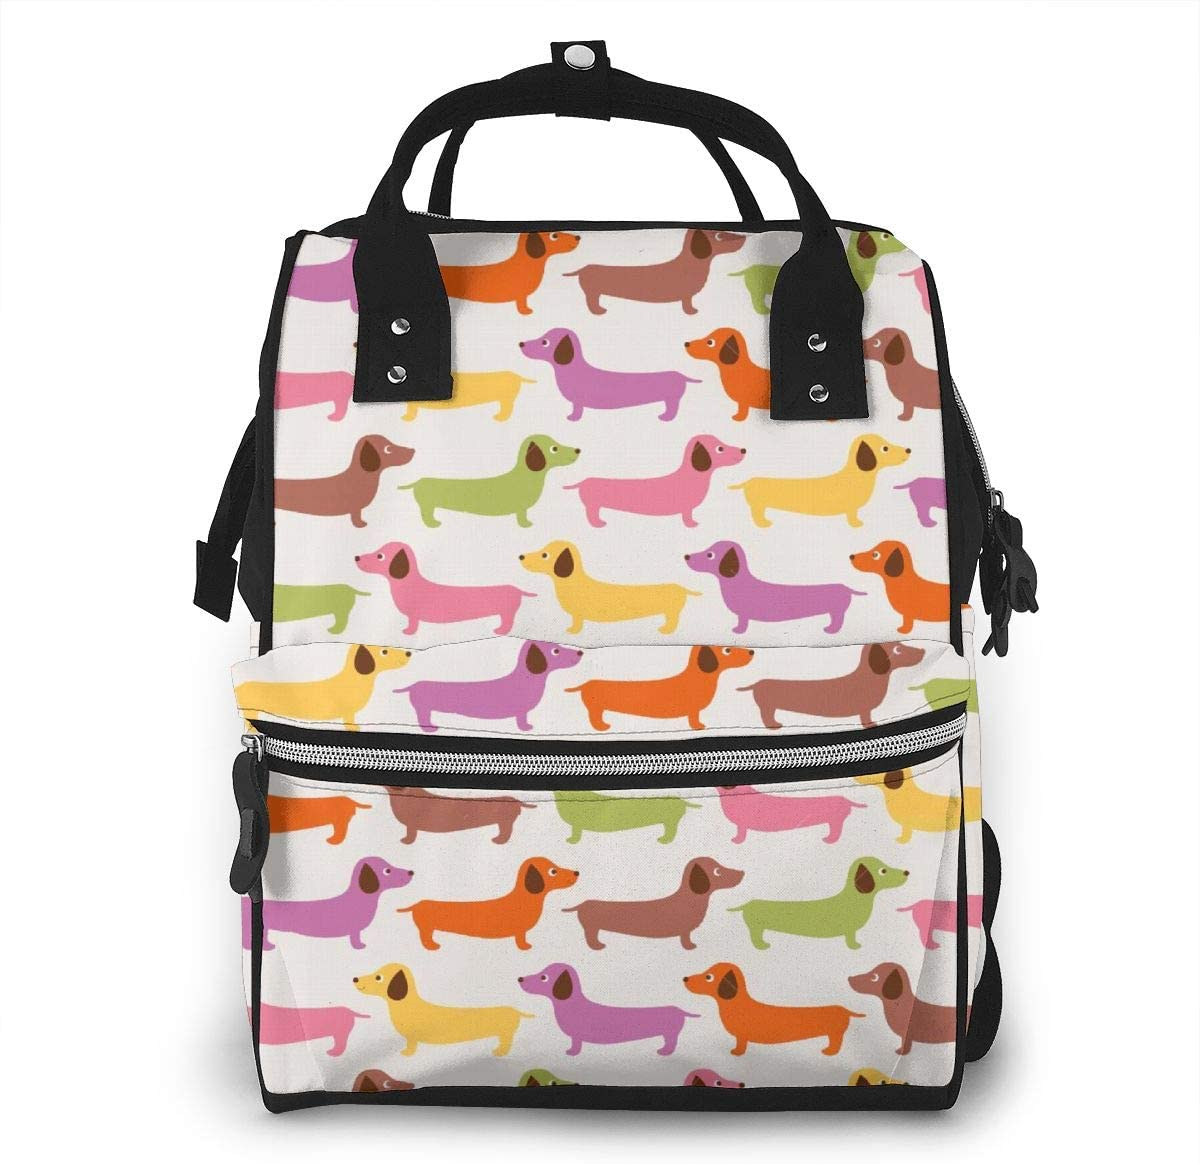 NiYoung Diaper Bag Organizer Insulated Waterproof Travel Nappy Backpack Large Capacity Tote Shoulder Nappy Bags for Mommy Backpack with Multi-Function,Durable and Stylish (Cartoon Dachshund Dog)